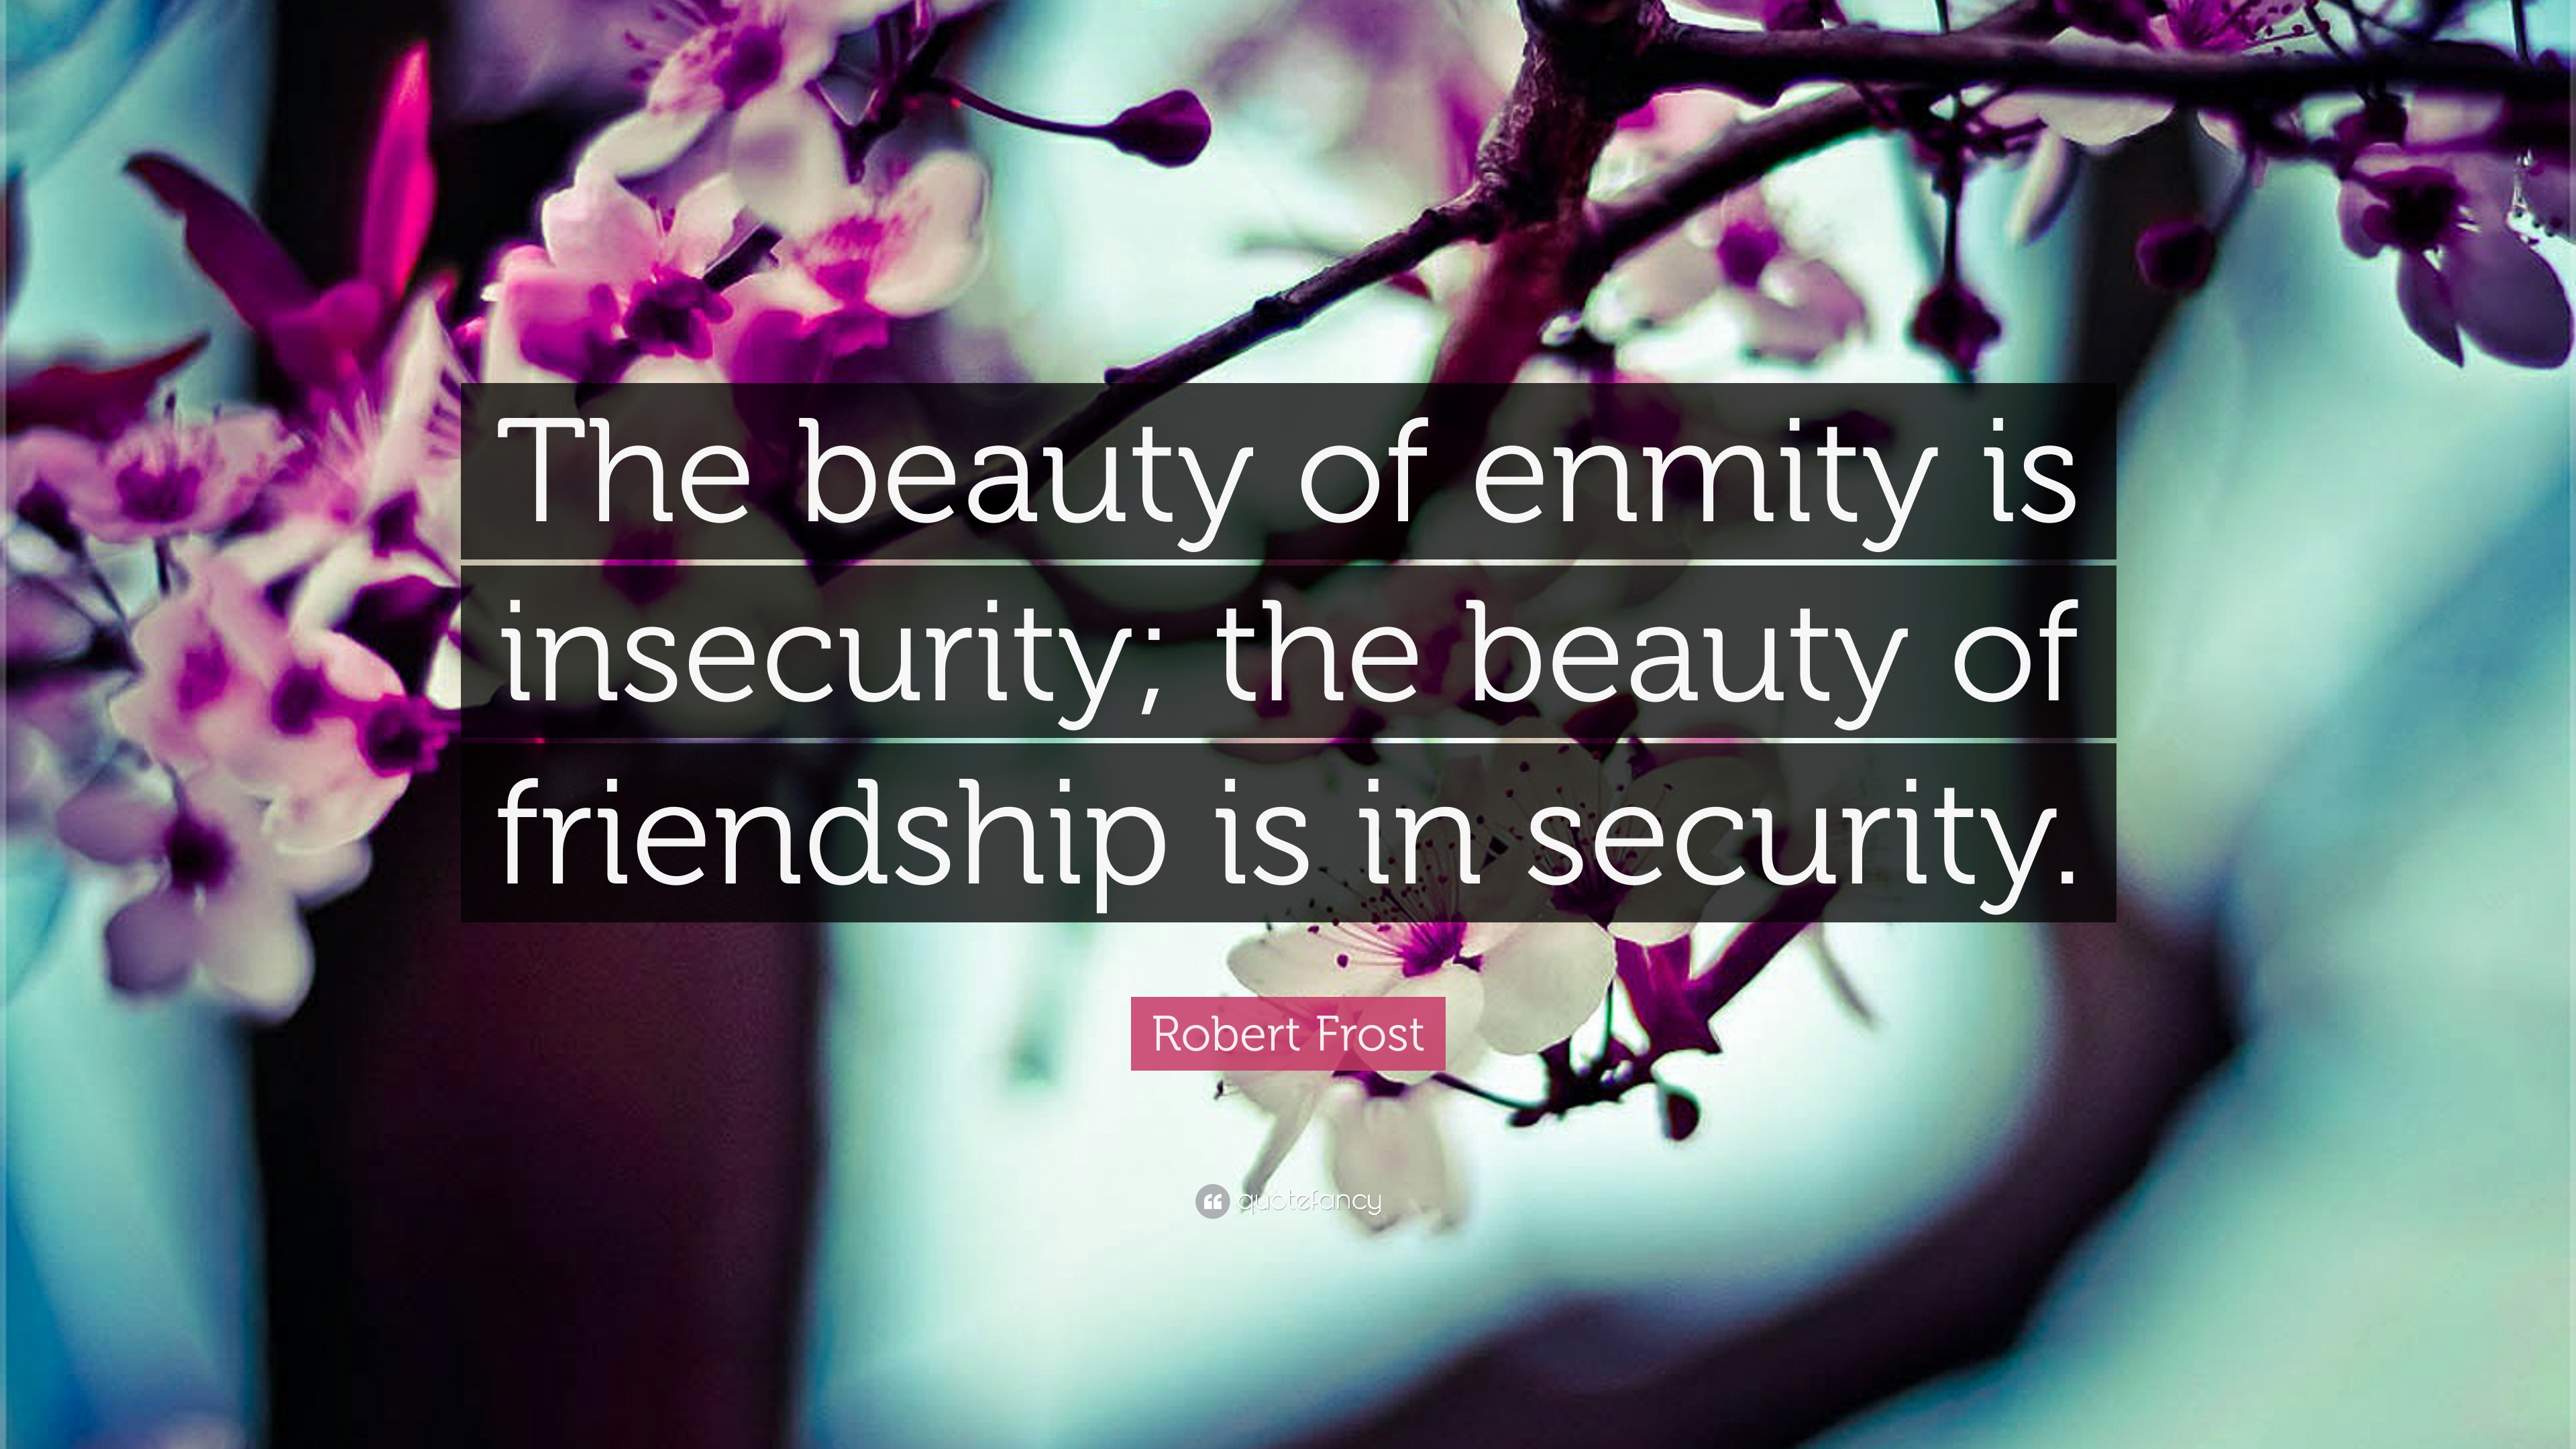 Insecurity in friendships